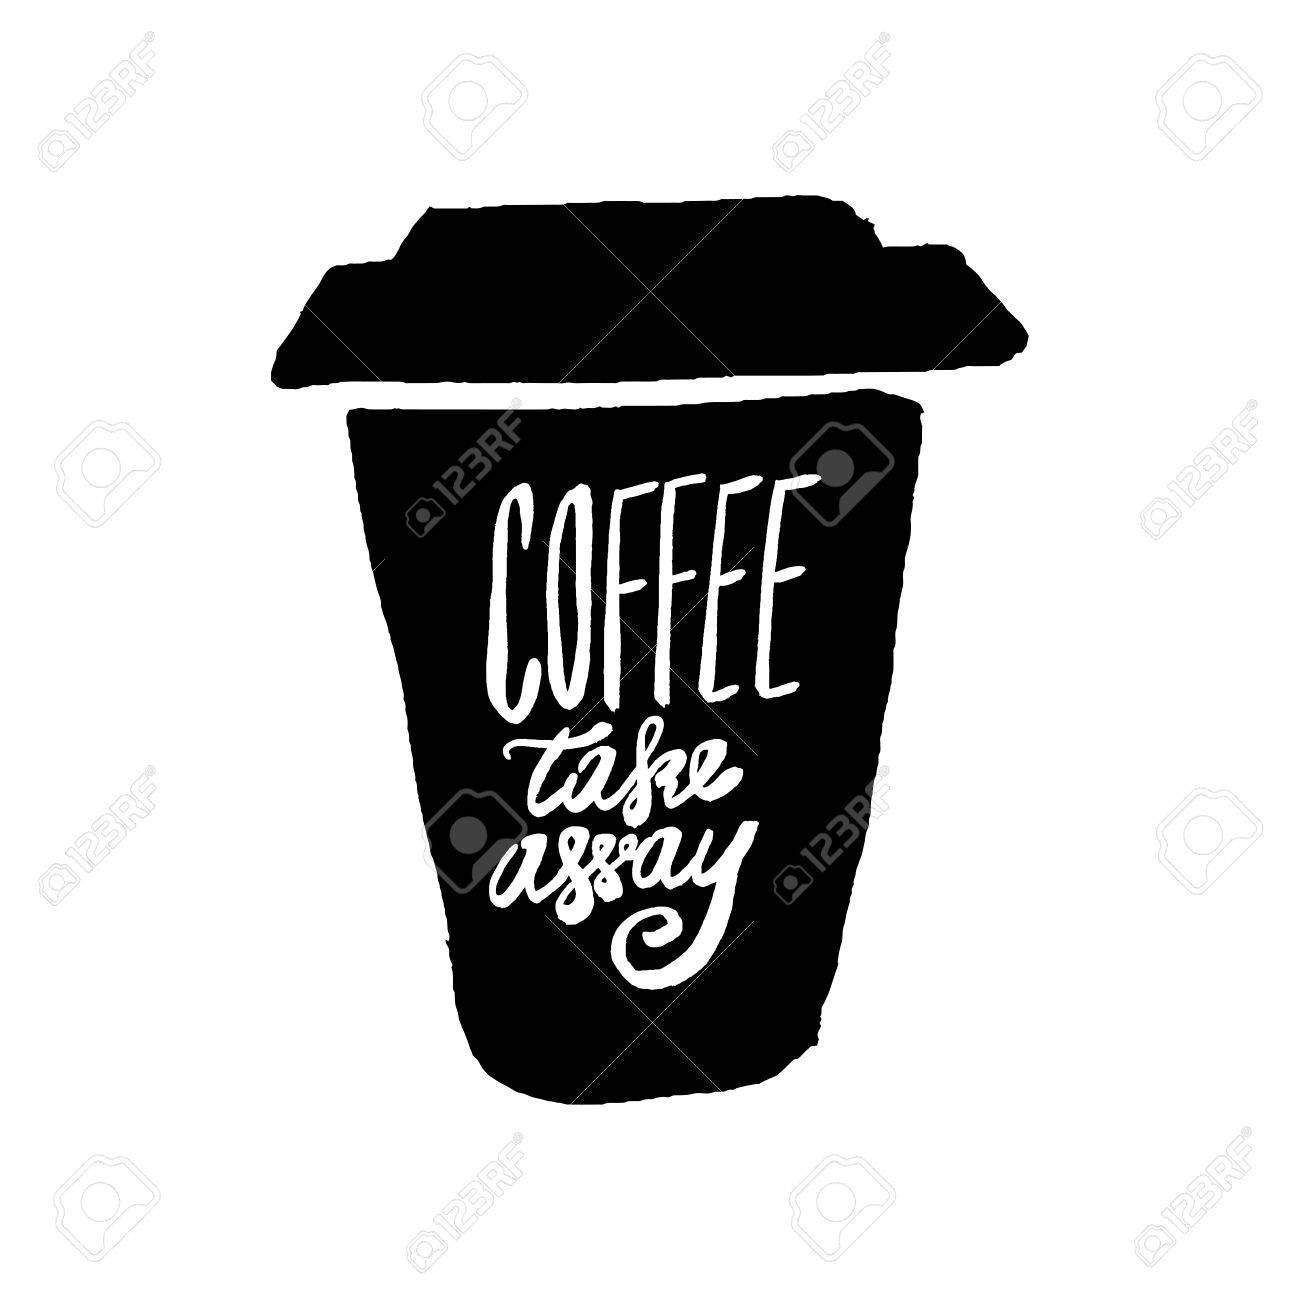 Citaten Koffie English : Take coffee with you lettering. coffee quotes. hand written design